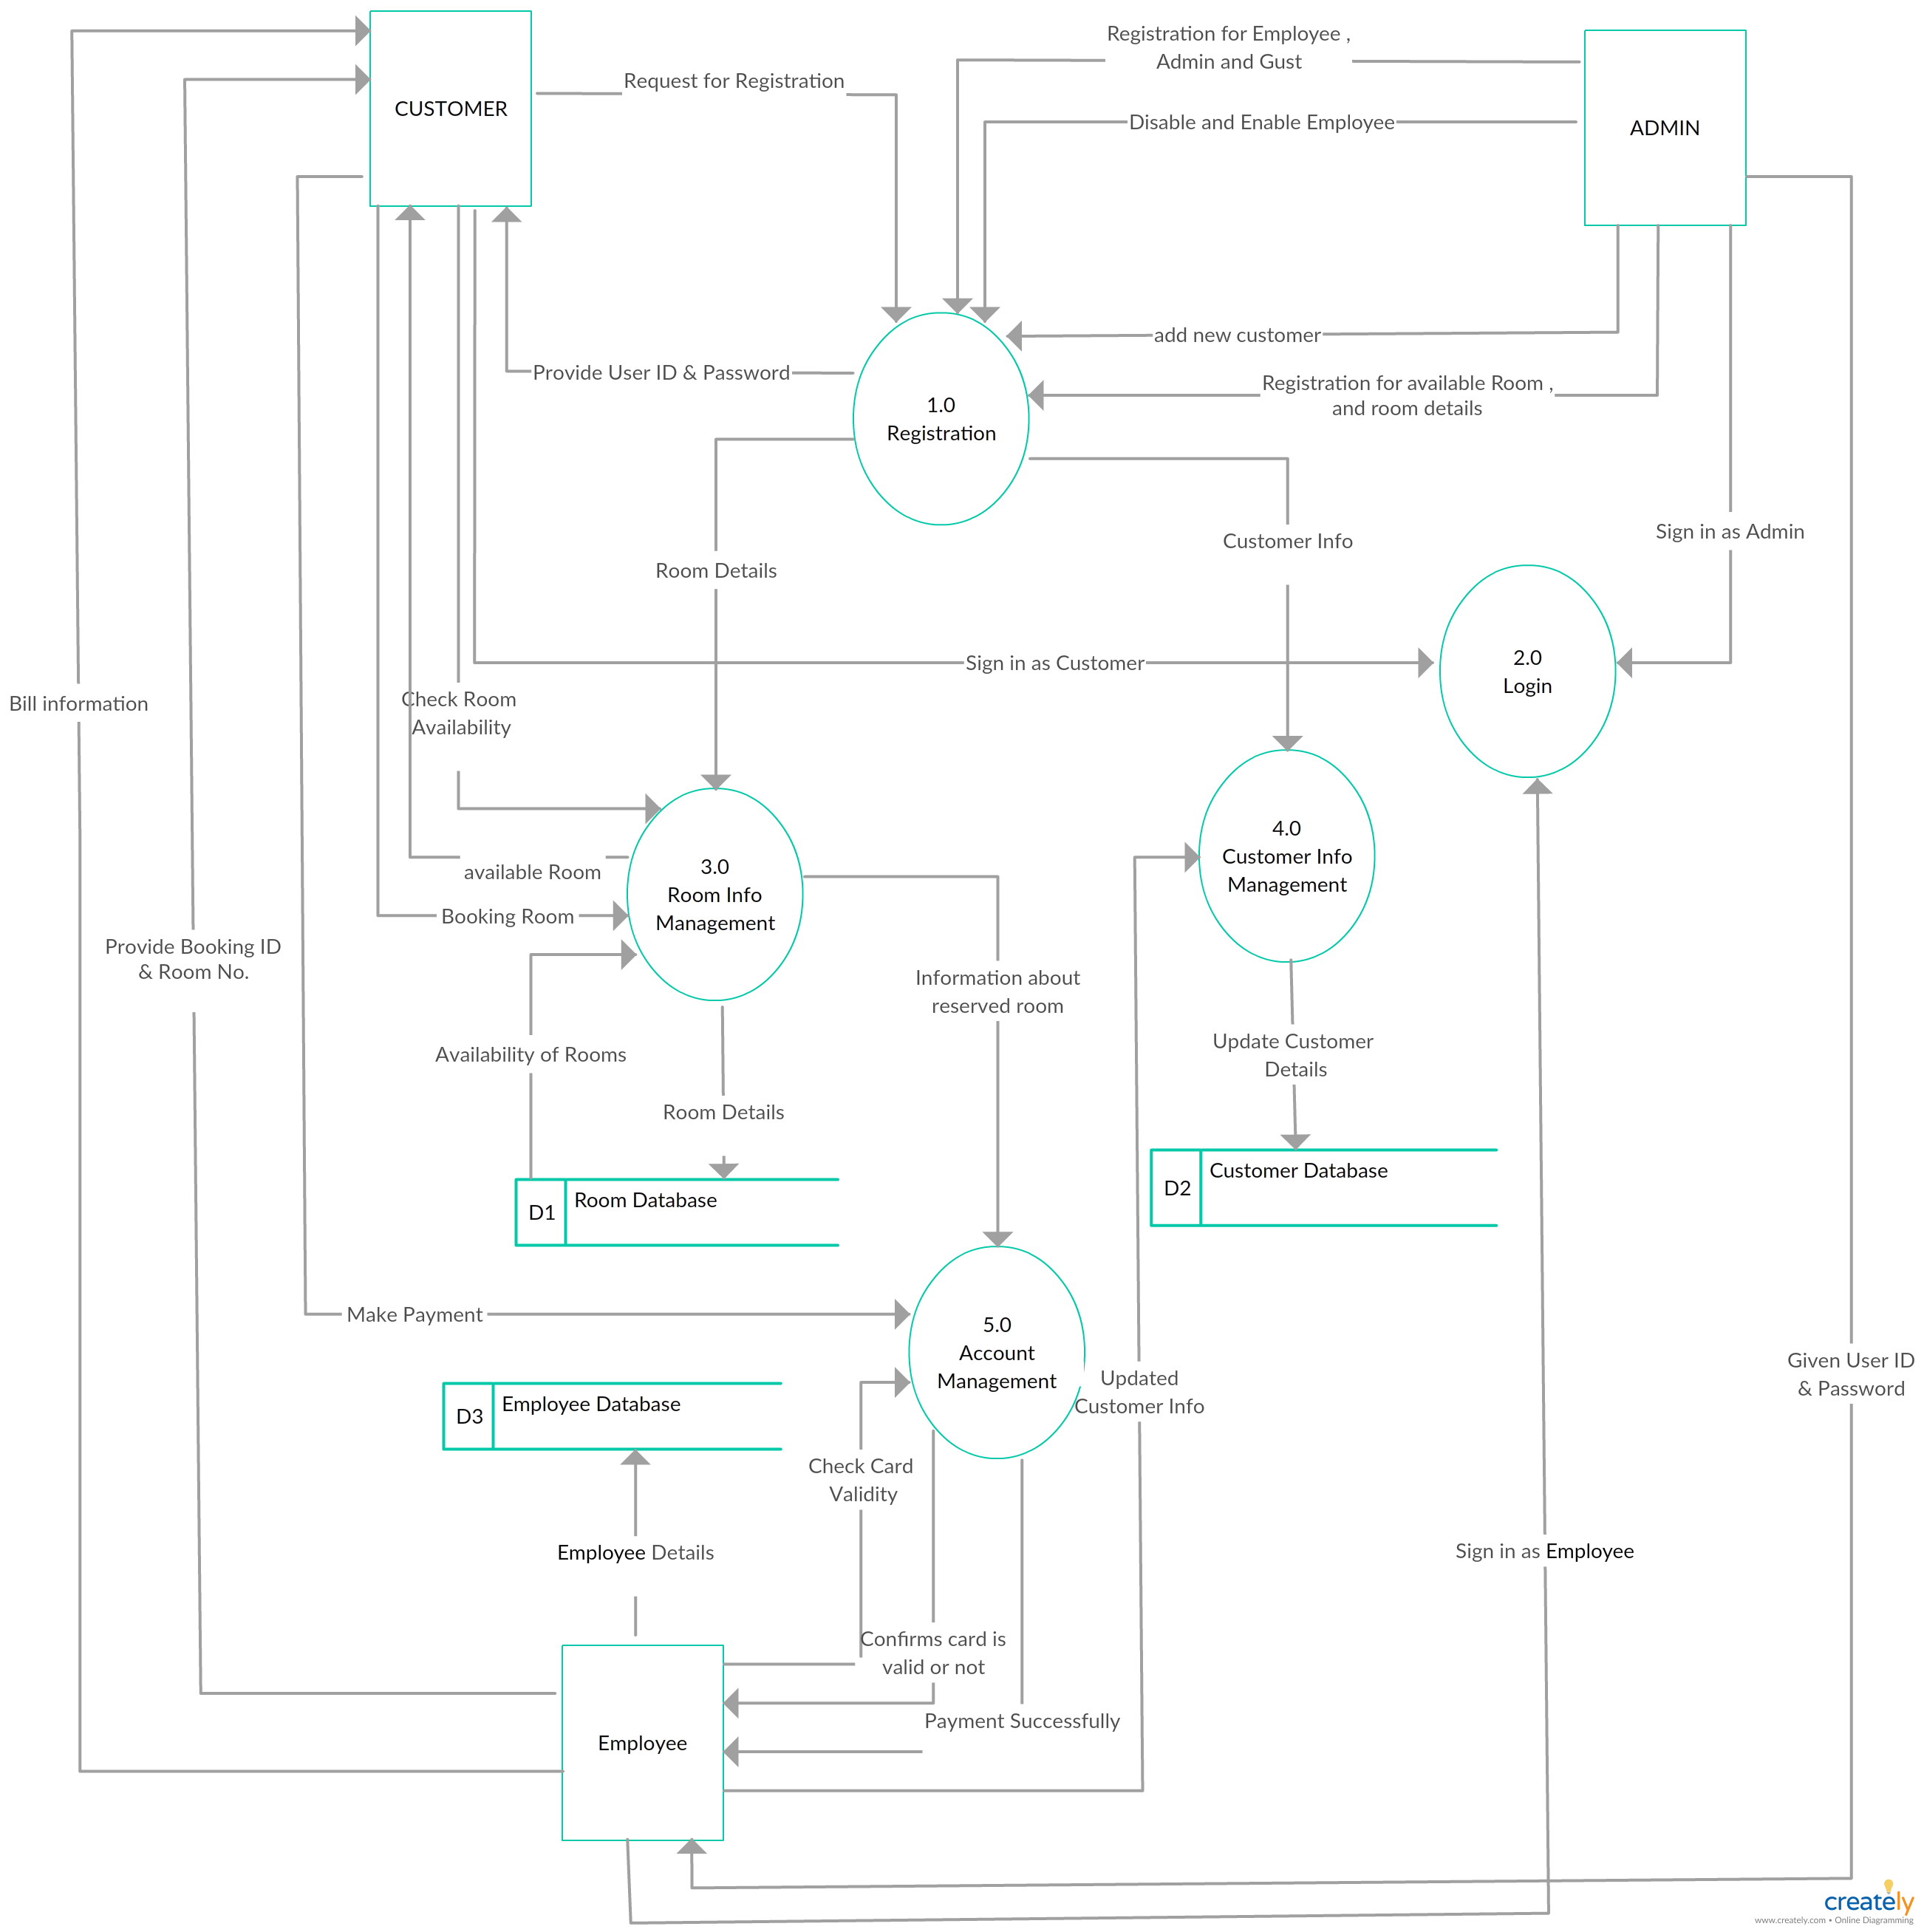 hight resolution of dfd for hotel management system level 1 dfd template for a hotel management system you can use this data flow diagram to create level 2 dfd diagrams too